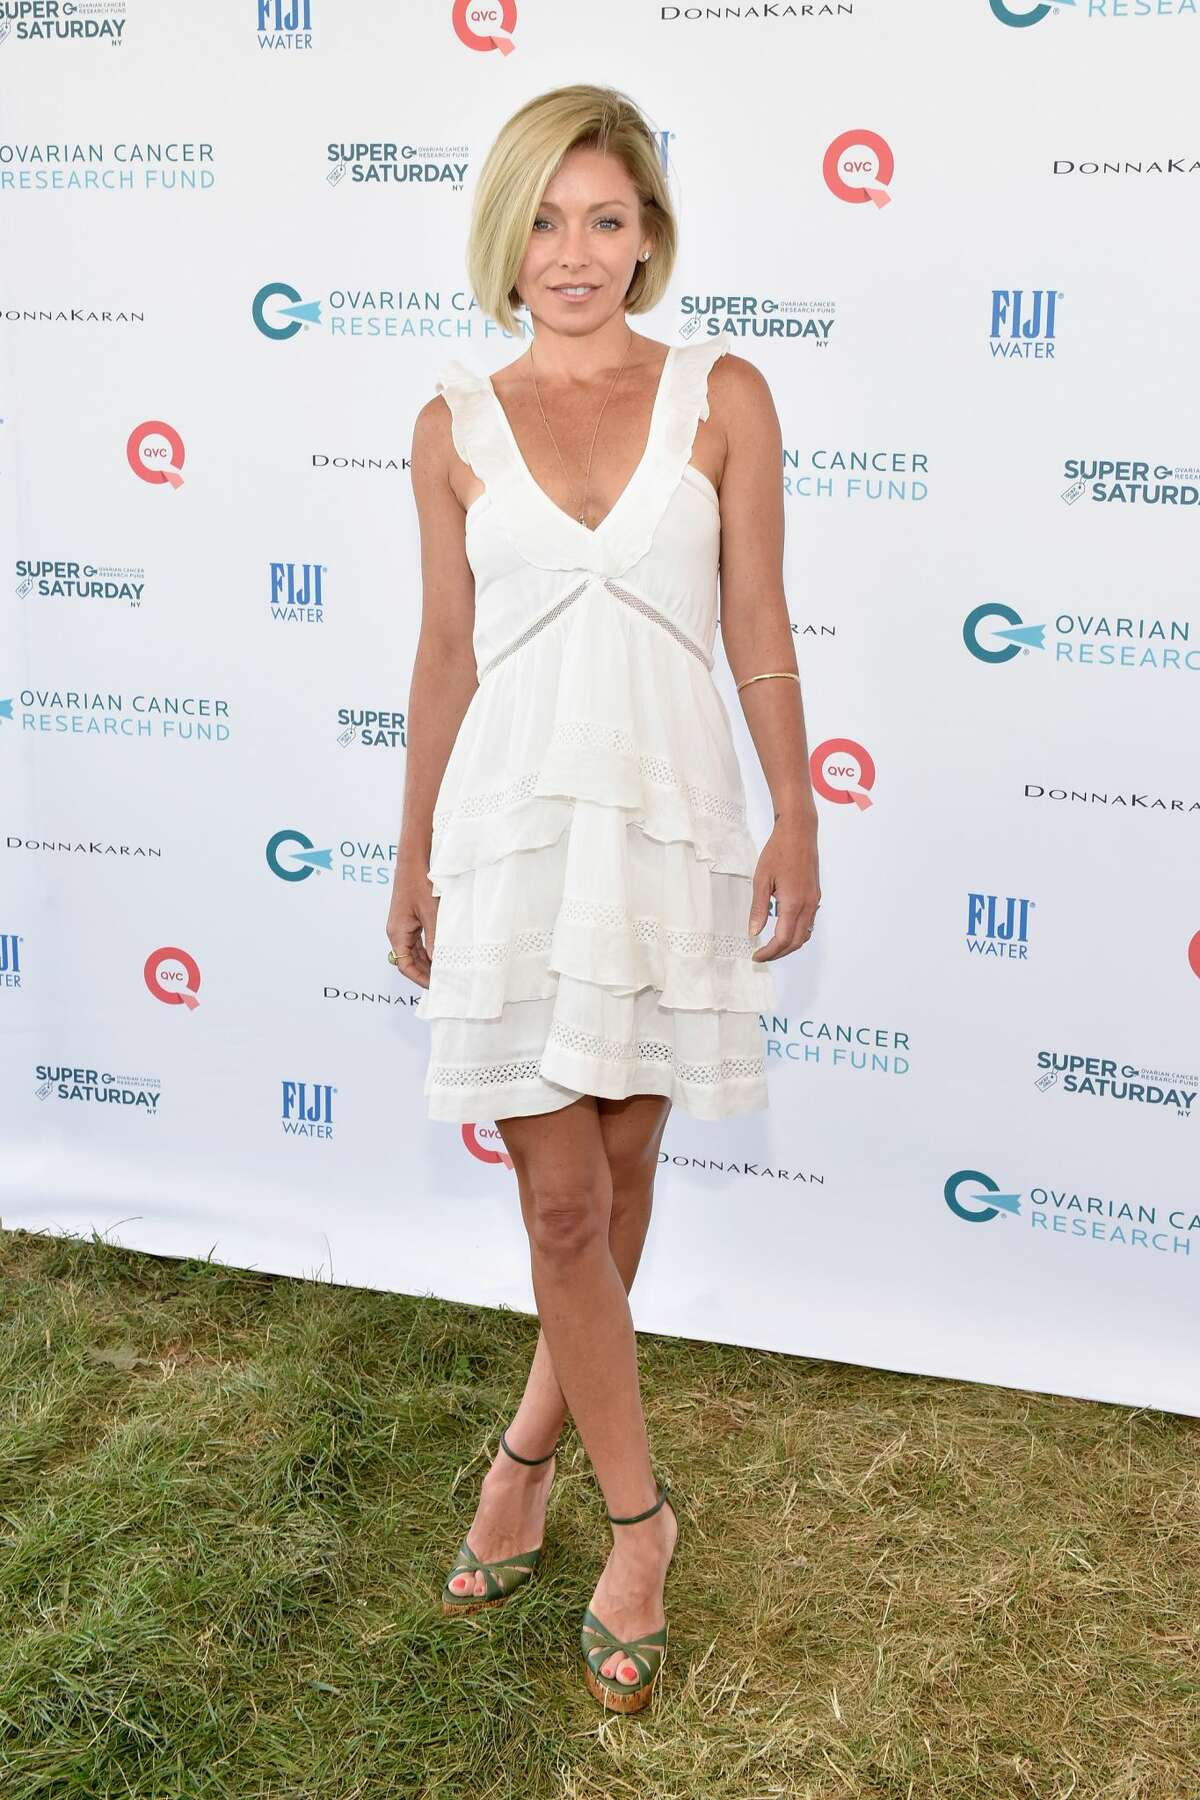 WATER MILL, NY - JULY 25: Kelly Ripa attends OCRF's 18th Annual Super Saturday NY Co-Sponsored by FIJI Water on July 25, 2015 in Water Mill, New York. (Photo by Eugene Gologursky/Getty Images)